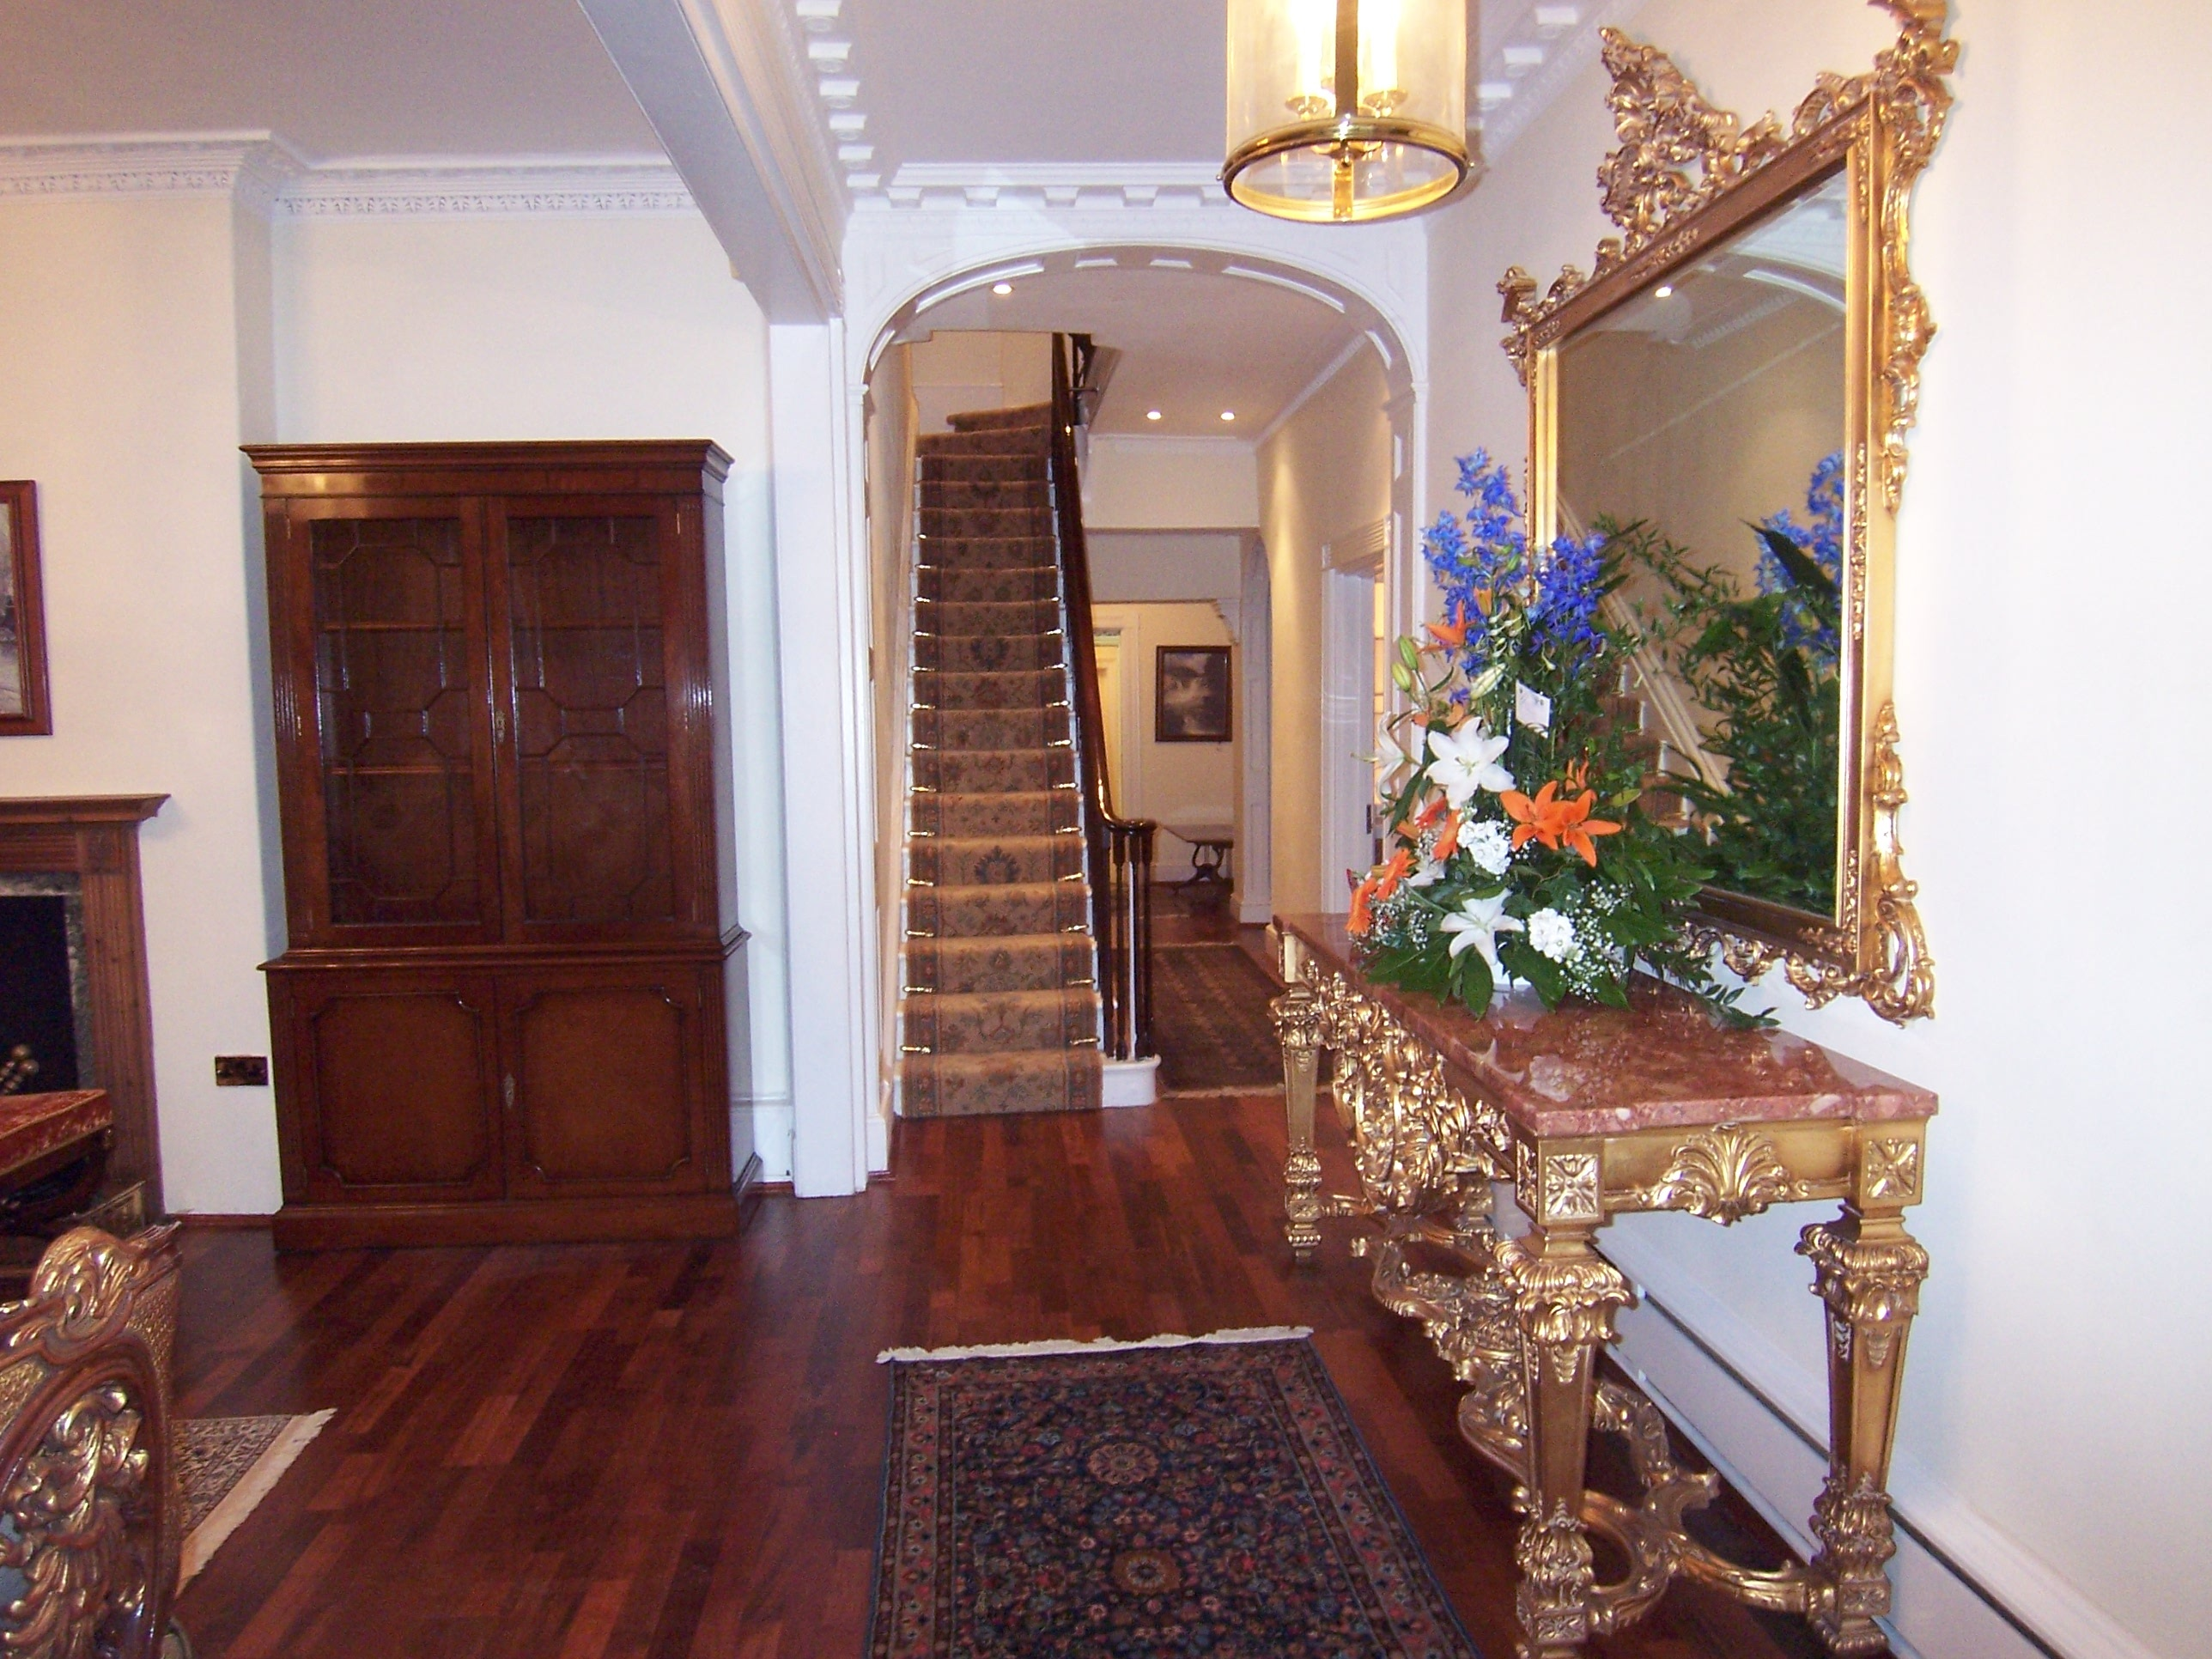 residential home internal space decoration deffufa decor